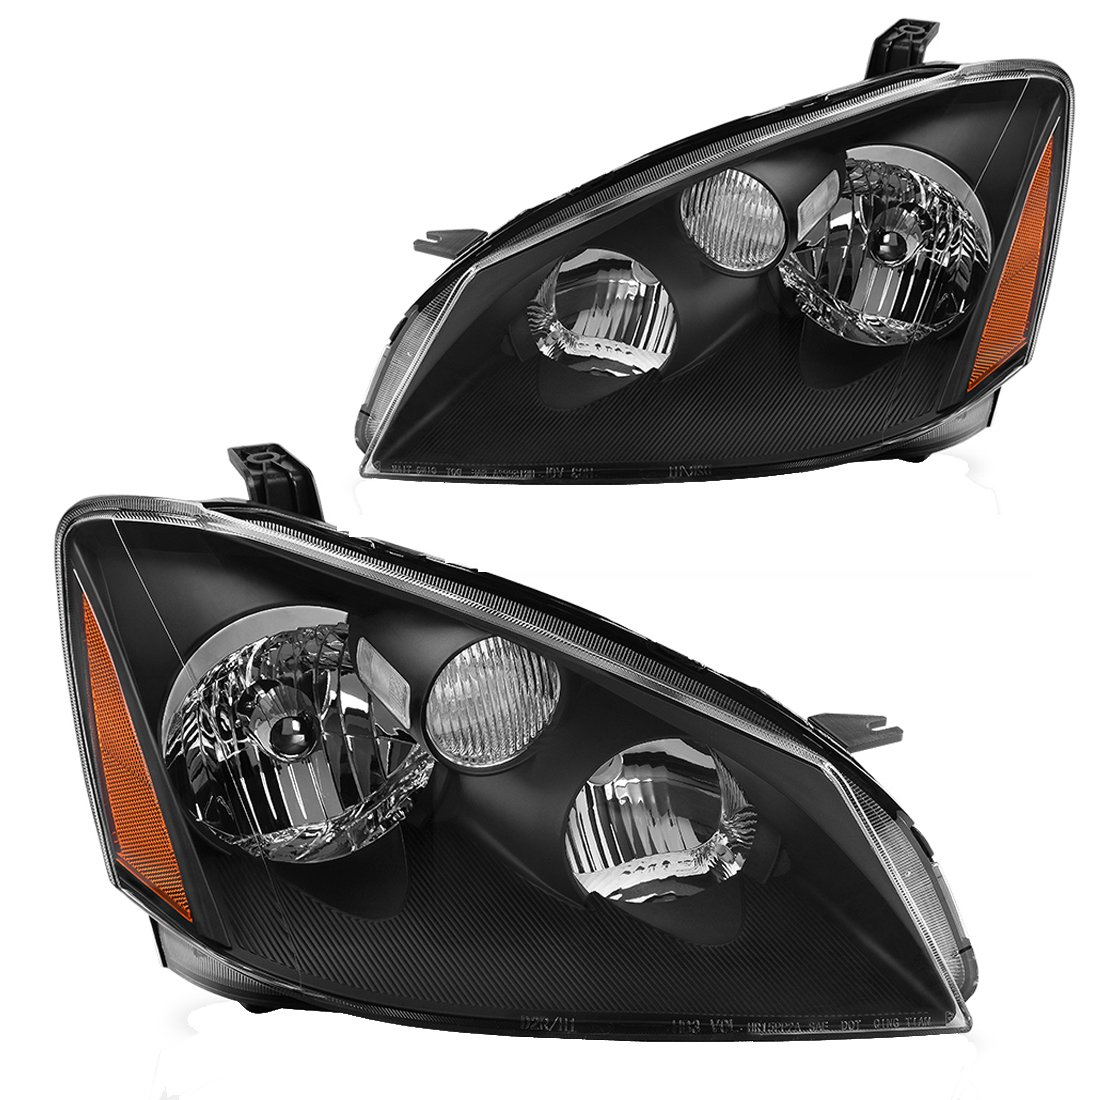 Headlight Assembly for 2005 2006 Nissan Altima Direct Replacement Headlamp, Black Housing Clear Lens, One-Year Warranty(Passenger And Driver Side) AUTOSAVER88